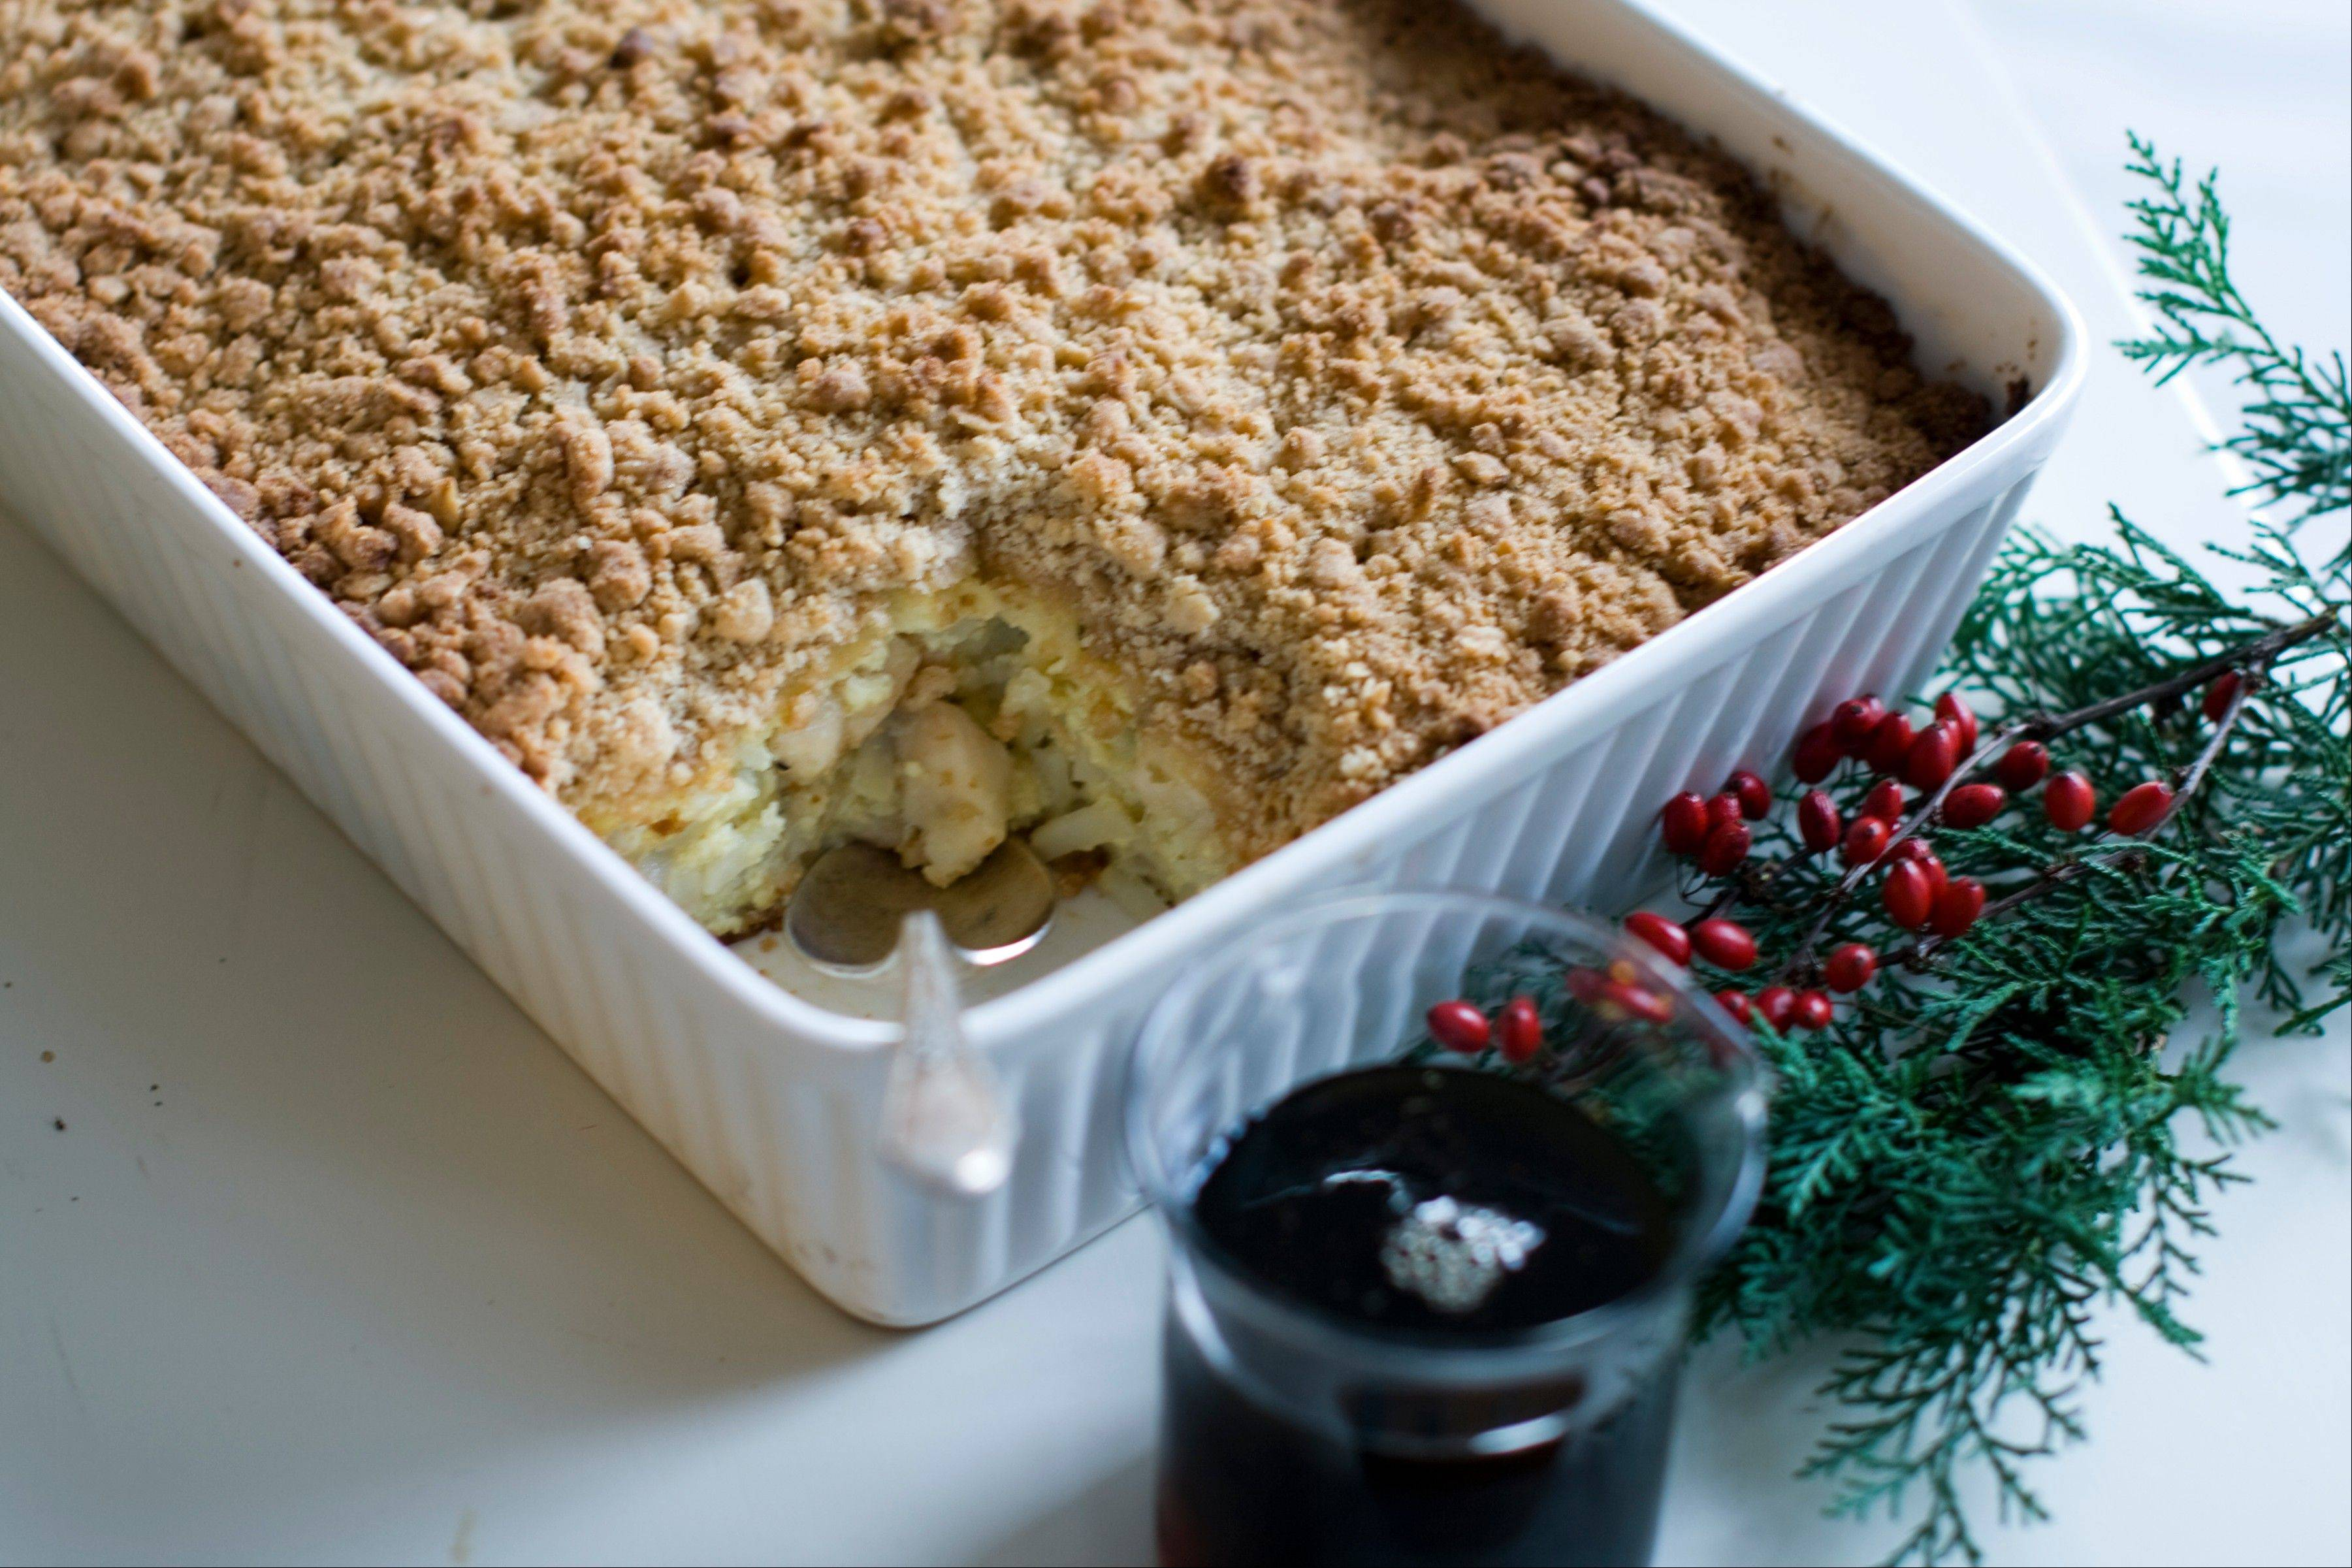 Apples, cheese and potatoes come together for a Christmas morning casserole.